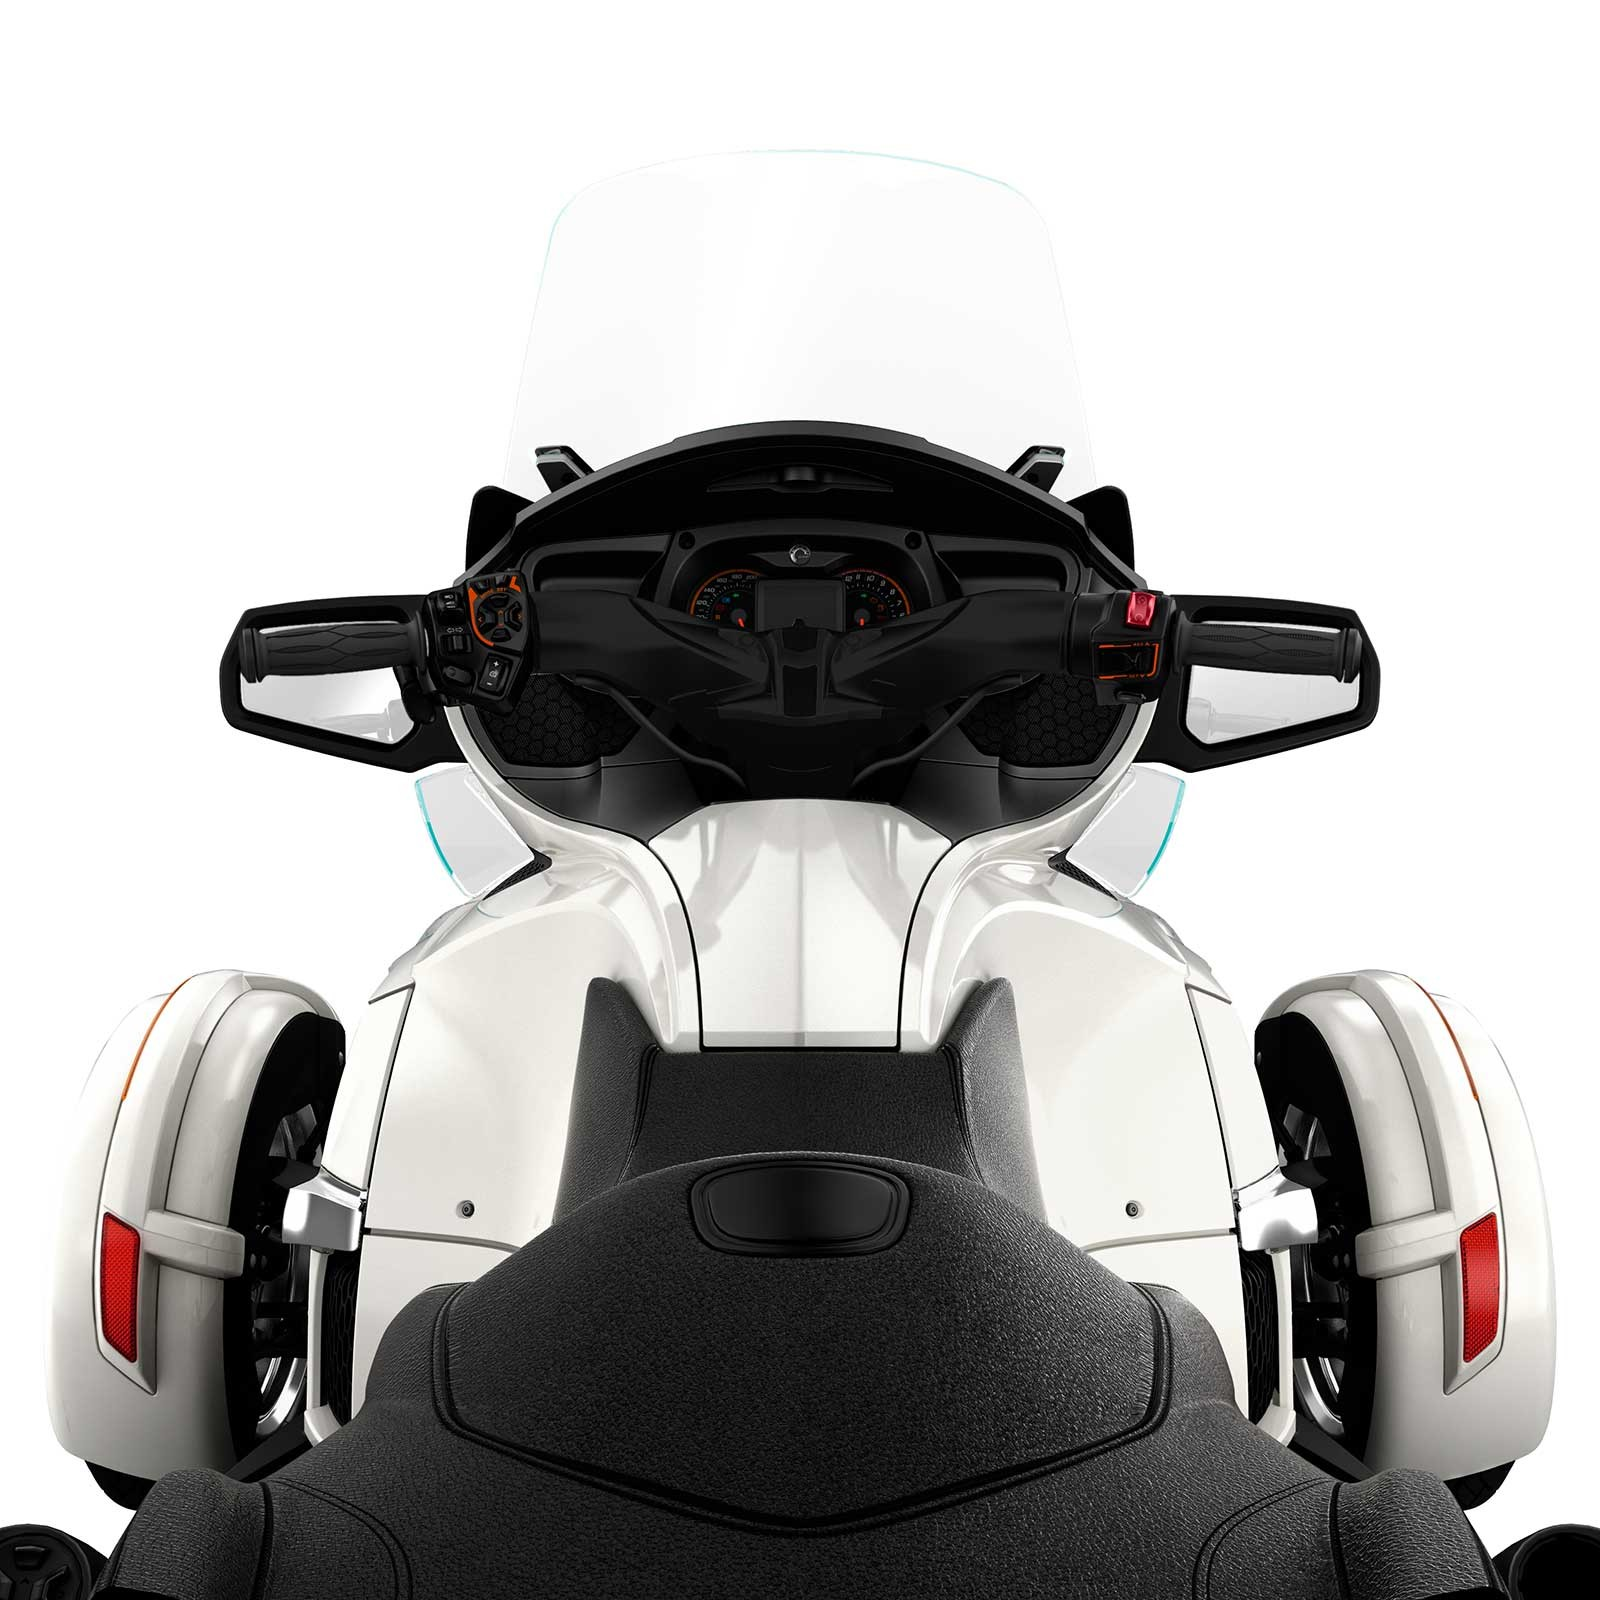 Ghidoane Can-am  Bombardier Tri Axis Adjustable Handlebar for All Spyder RT models